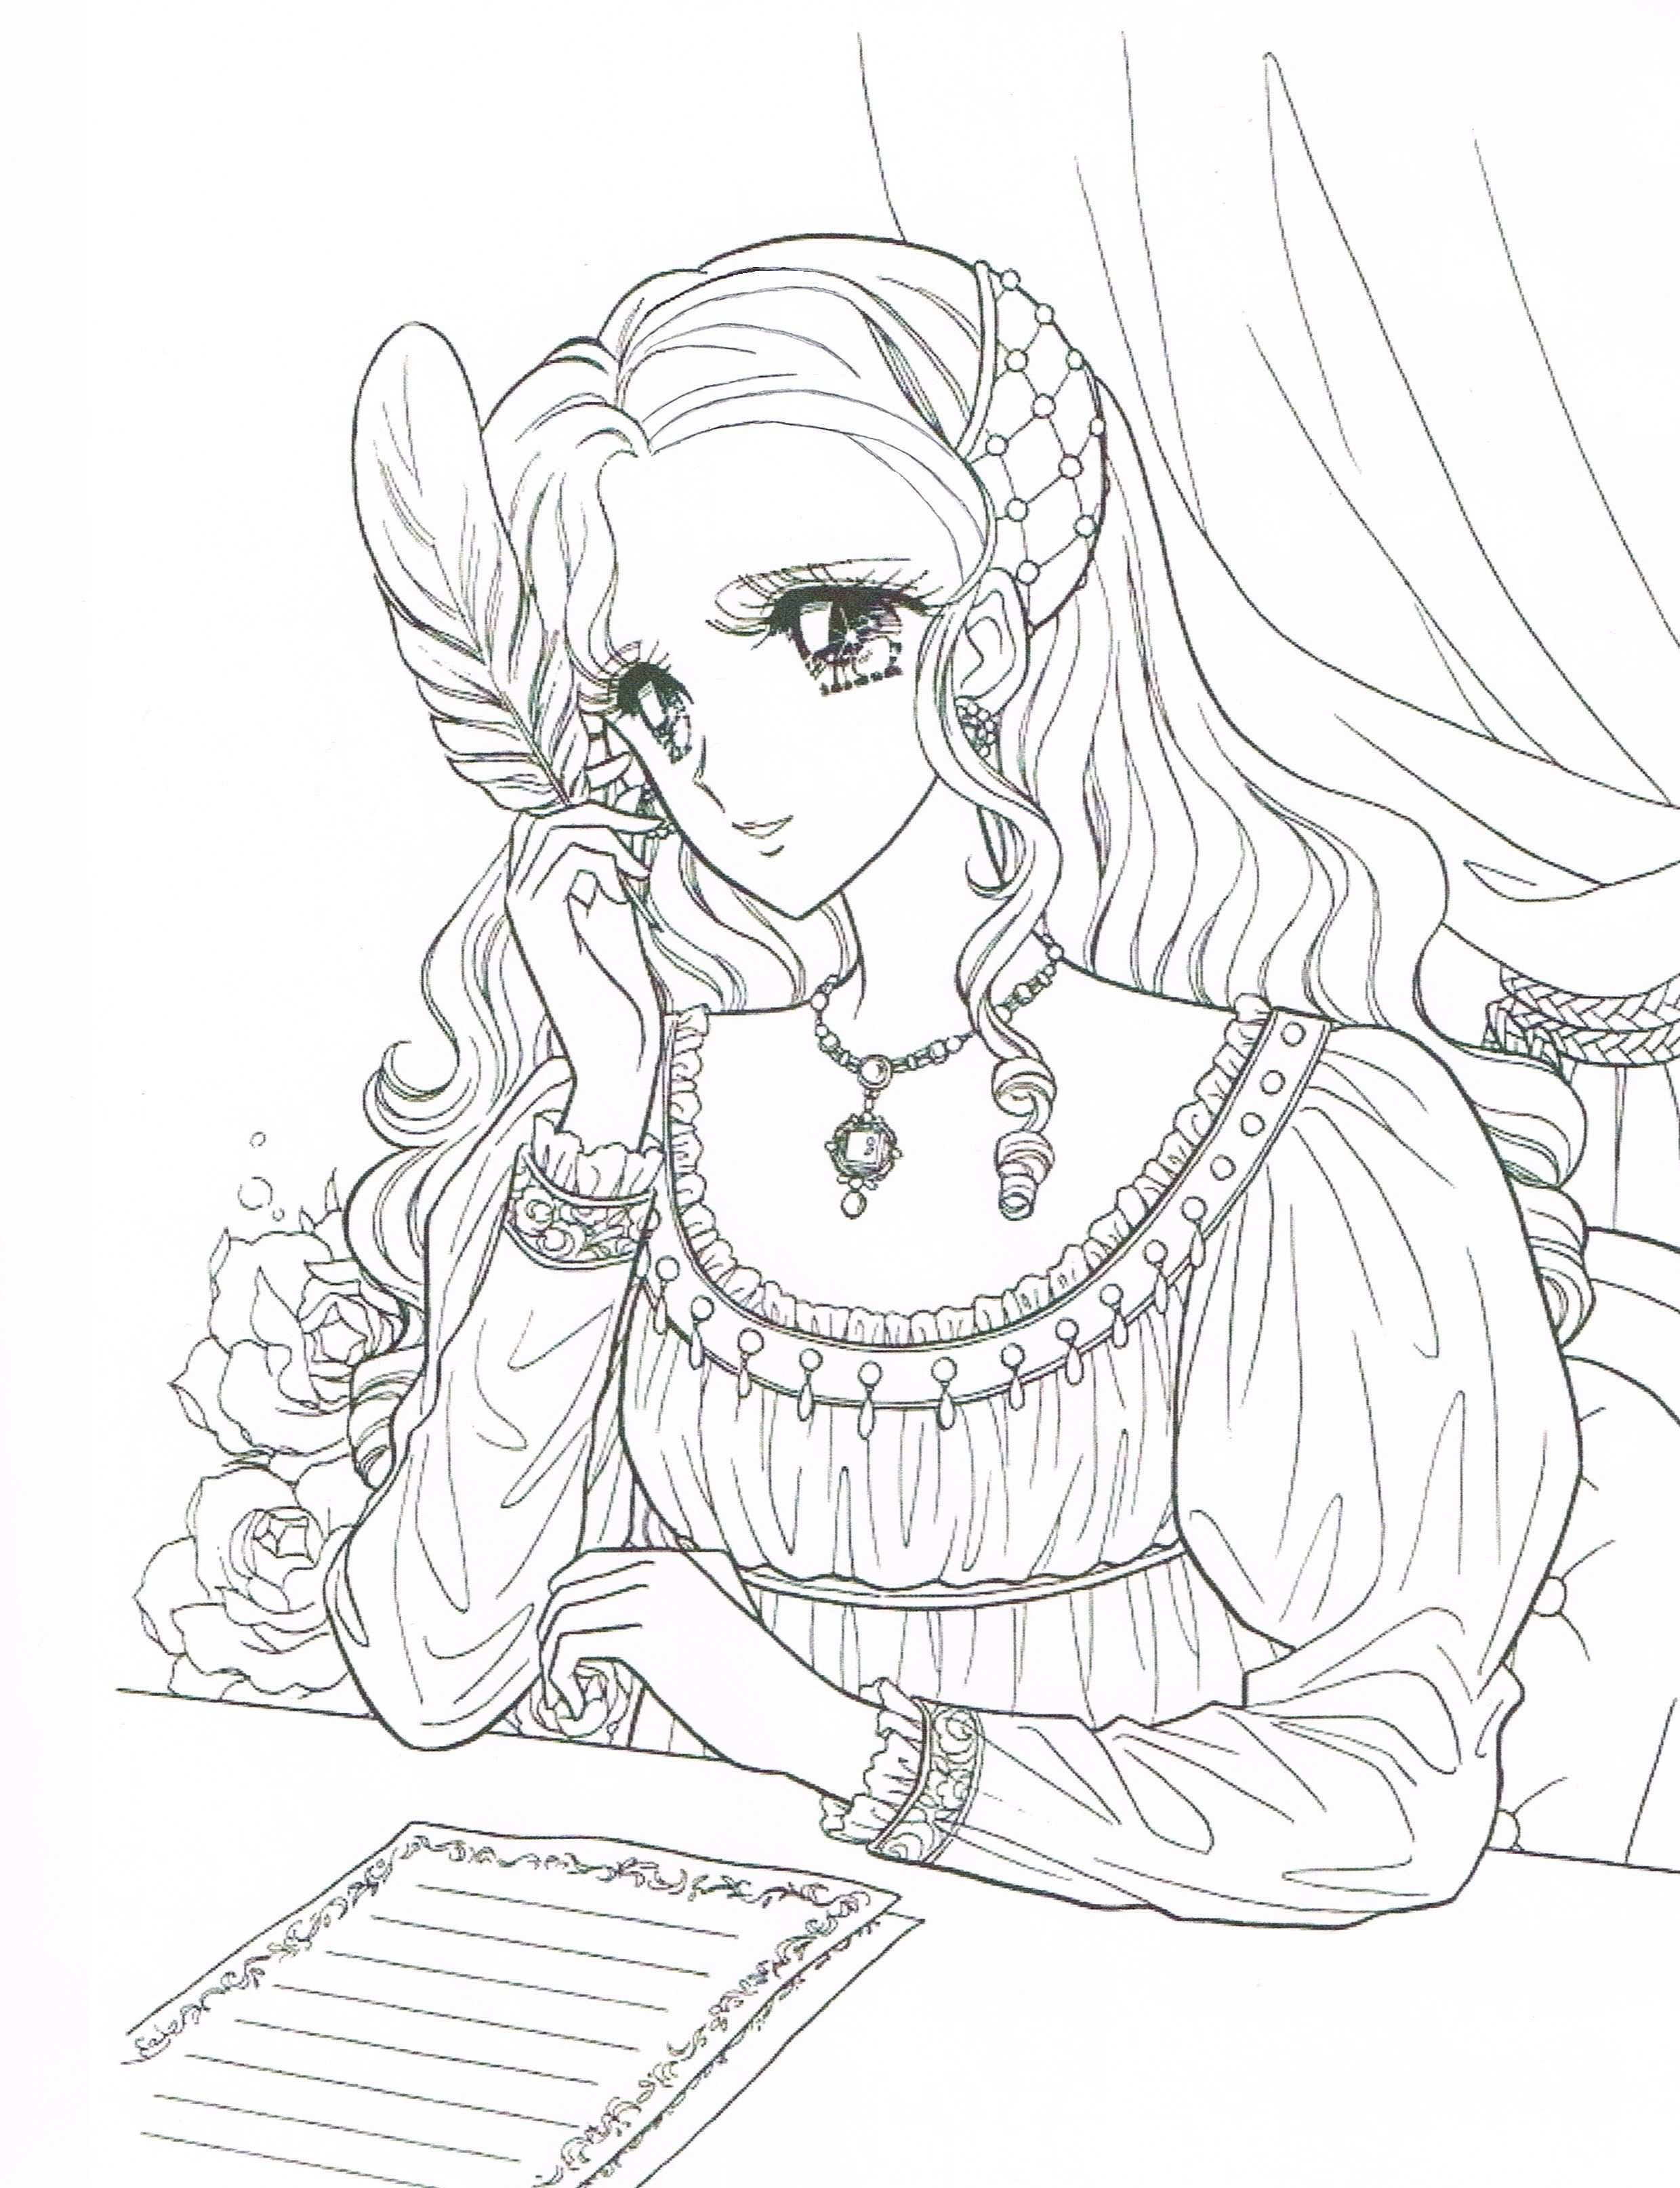 Princess World Coloring Page Italian Renaissance Manga Girl Coloringpage Coloring Printable Manga Princ Coloring Books Cute Coloring Pages Coloring Pages